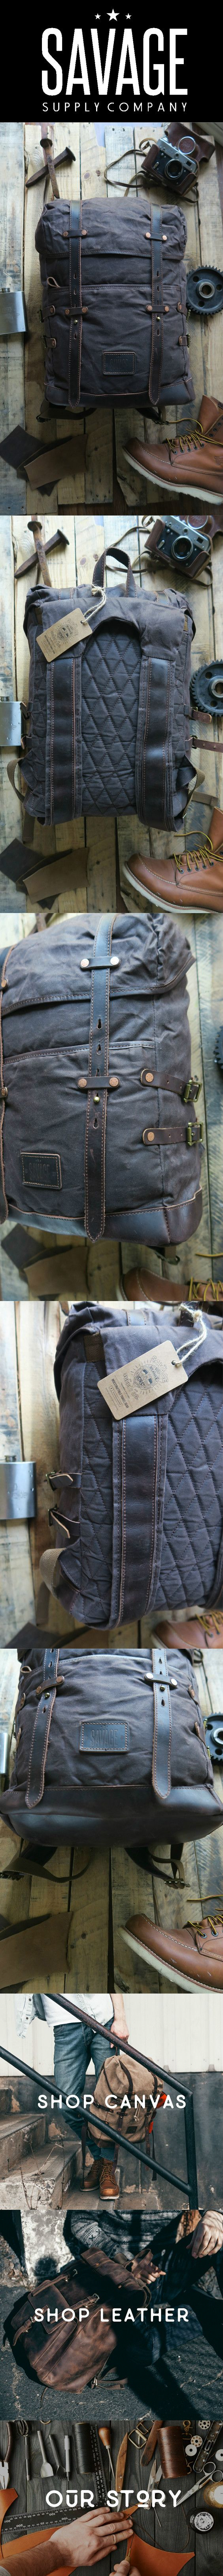 Waxed canvas adventure camping/hiking backpack.